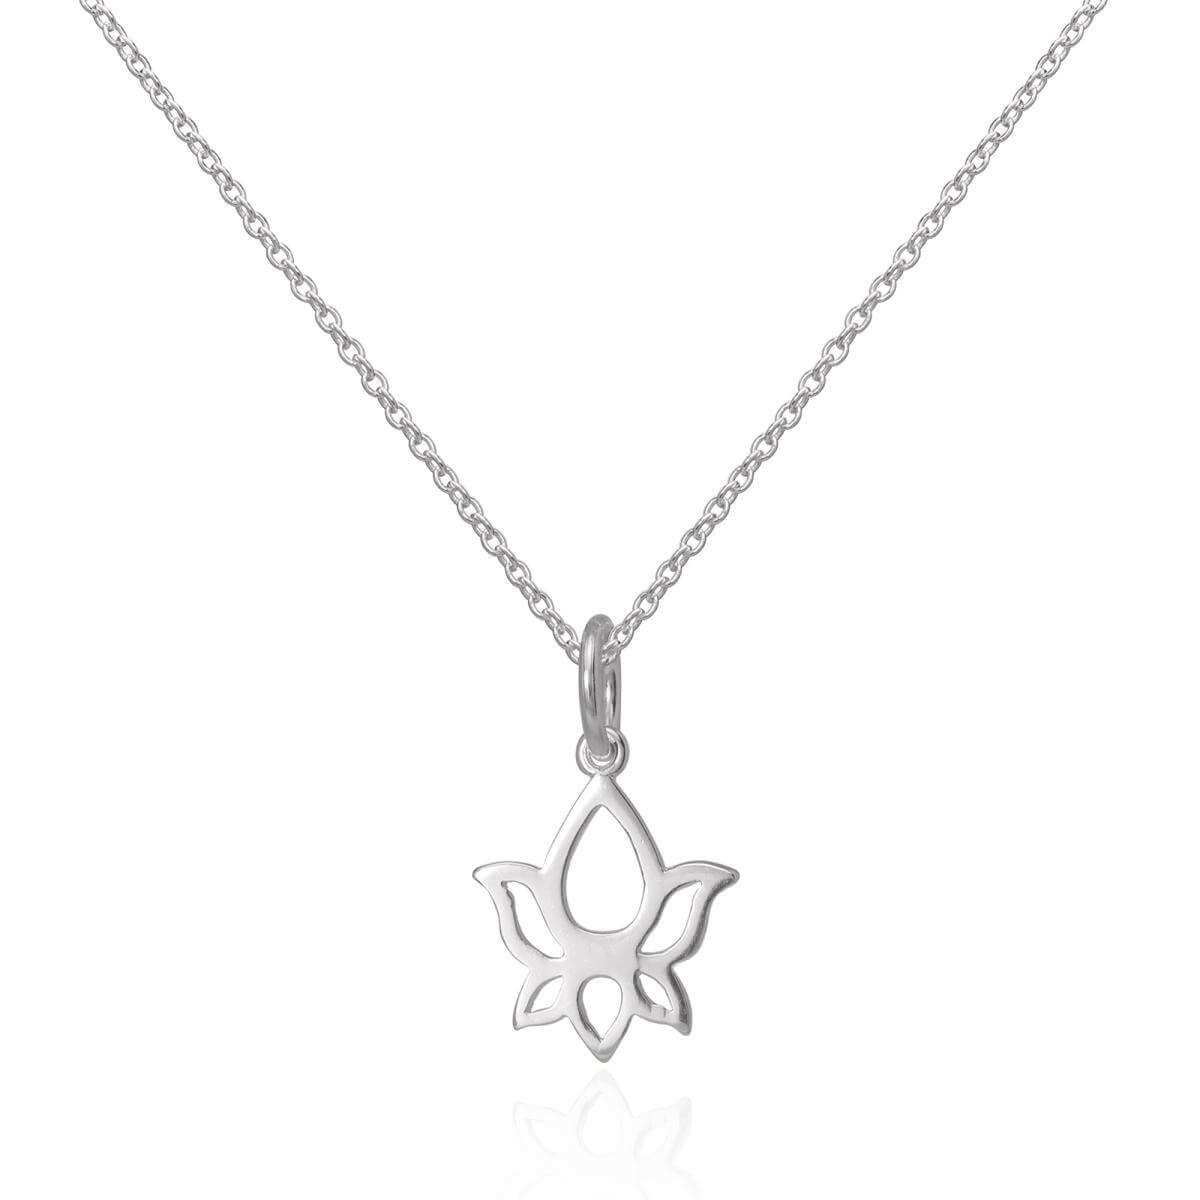 Sterling Silver Cut Out Lotus Flower Outline Pendant Necklace 16 - 22 Inches